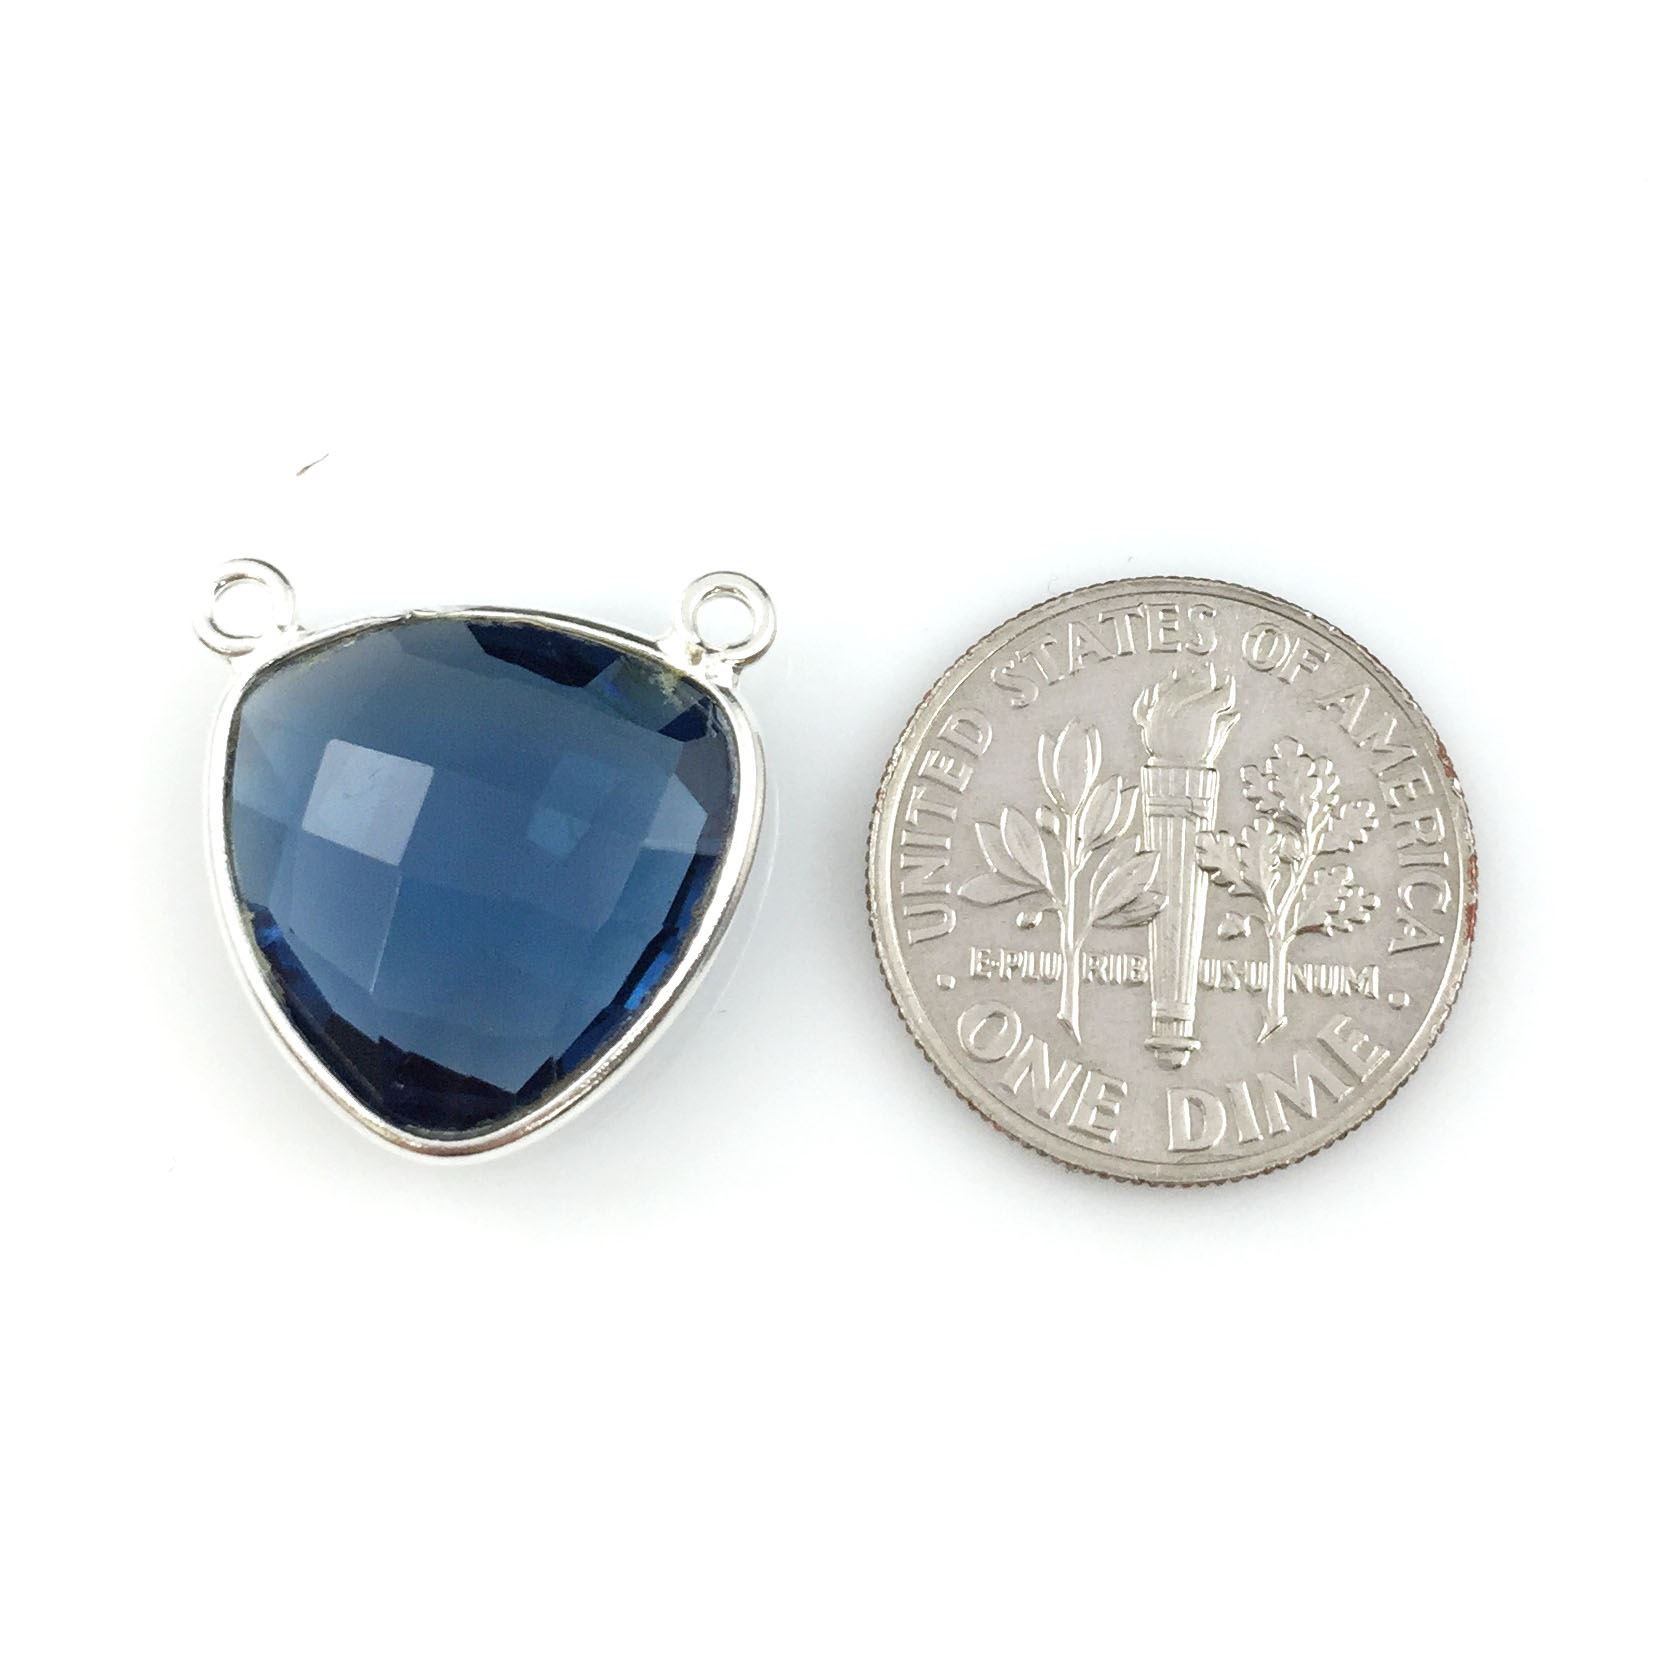 Bezel Gemstone Connector Pendant - Iolite Quartz - Sterling Silver - Small Trillion Shaped Faceted - 15mm - 1 piece